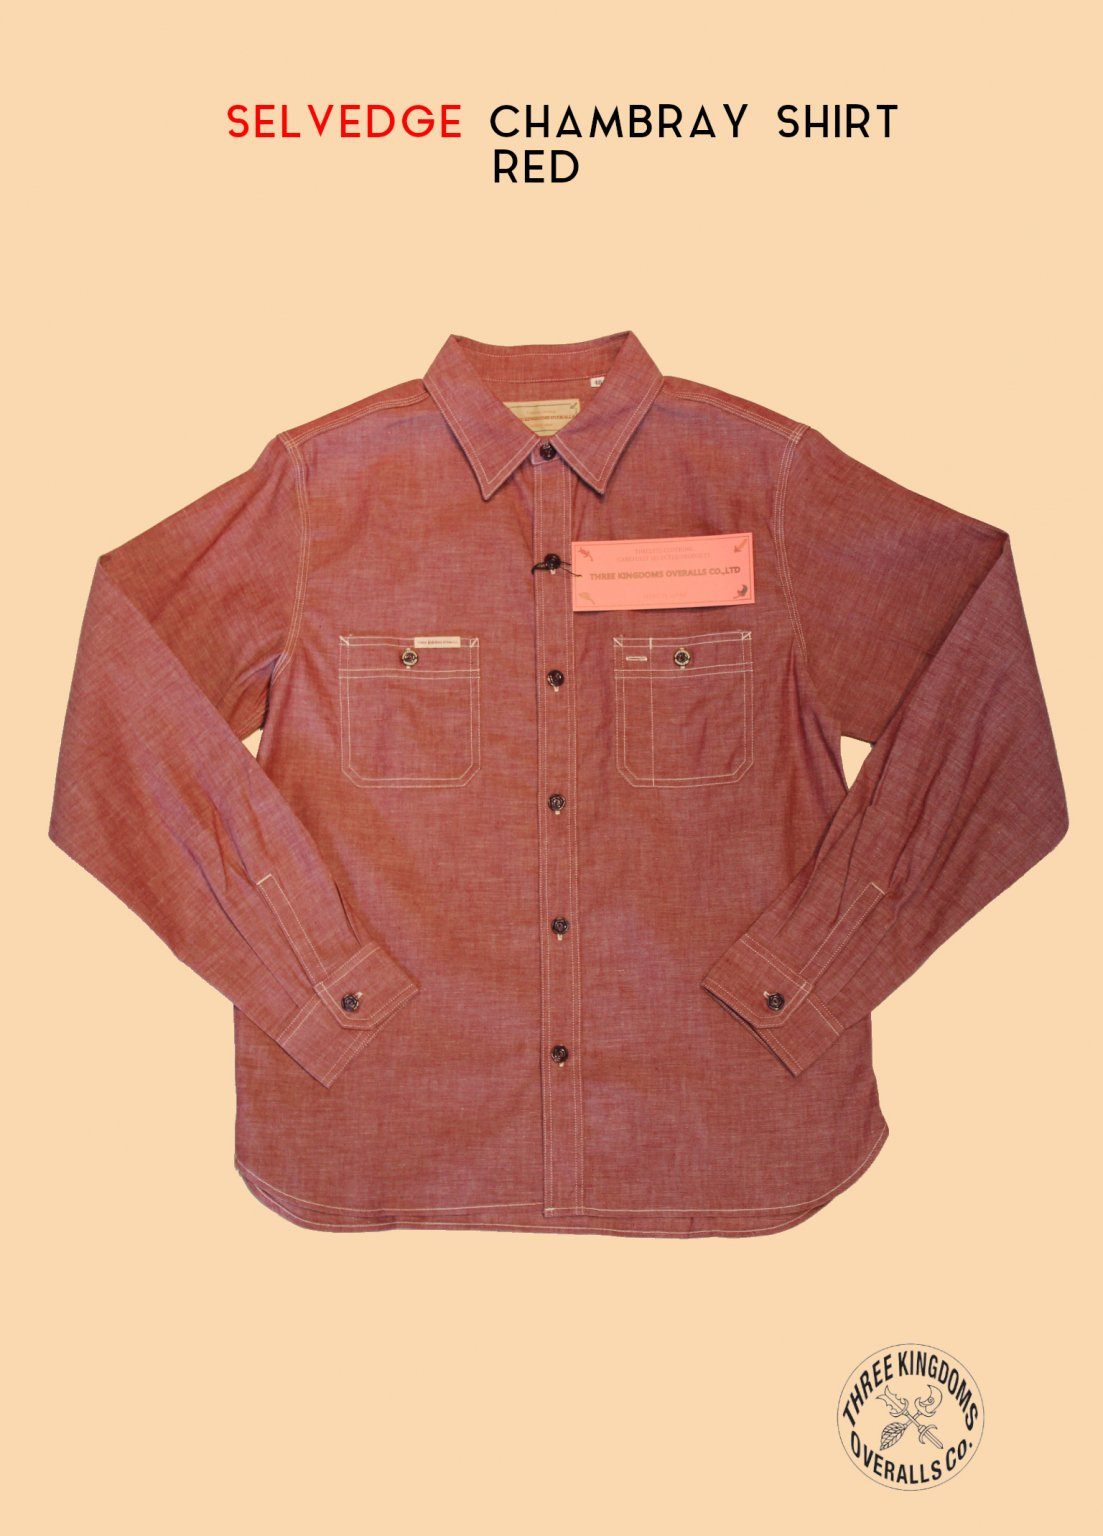 CB01Sr CHAMBRAY SHIRT (RED)<img class='new_mark_img2' src='https://img.shop-pro.jp/img/new/icons14.gif' style='border:none;display:inline;margin:0px;padding:0px;width:auto;' />